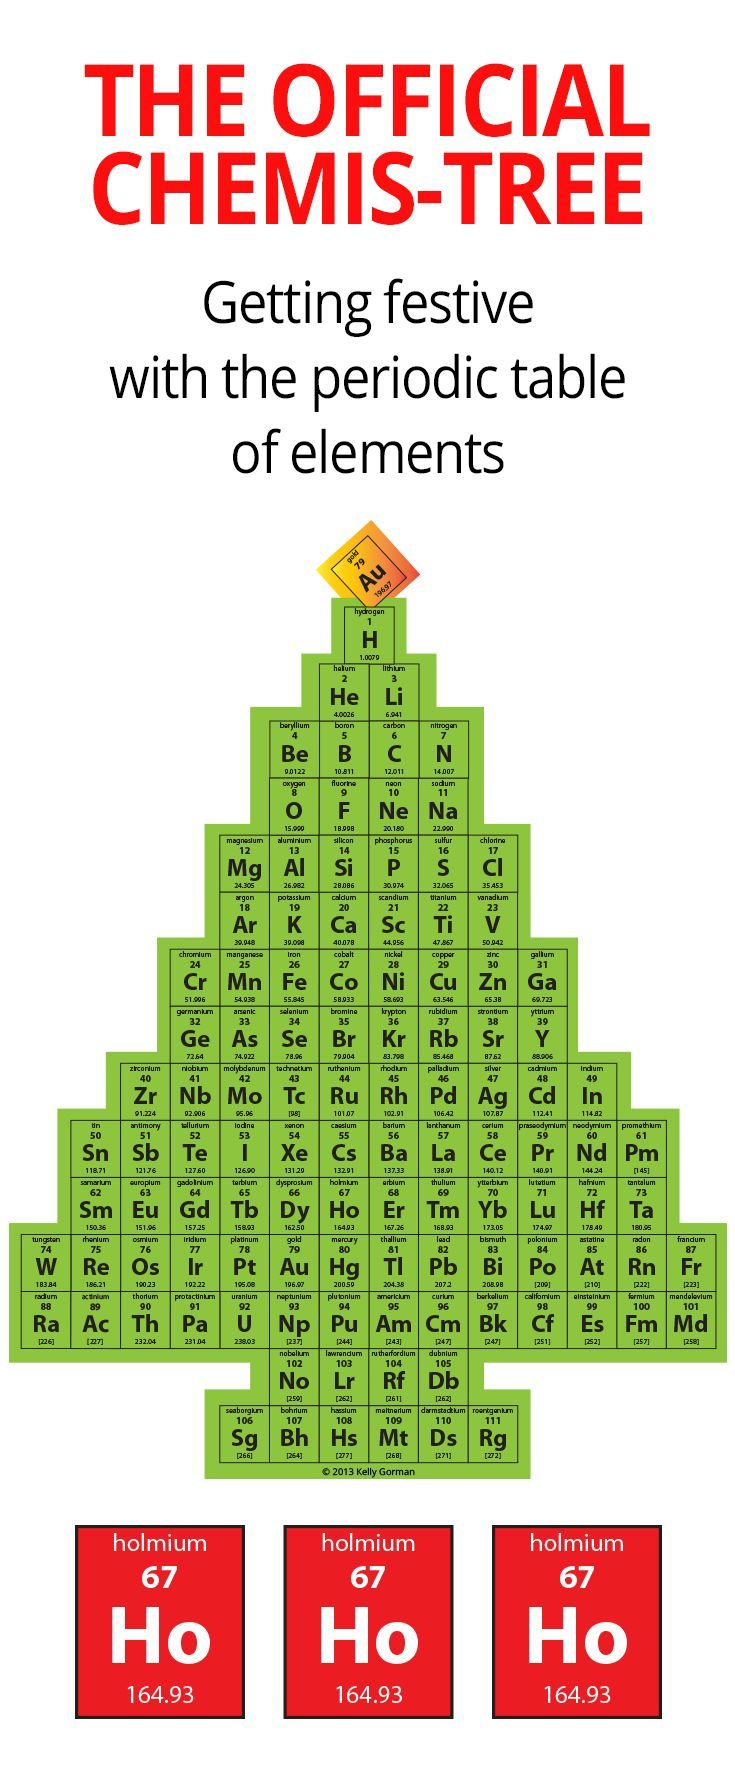 Best 25 periodic elements ideas on pinterest periodic table christmas fun with the periodic table of elements the official chemis tree gamestrikefo Gallery